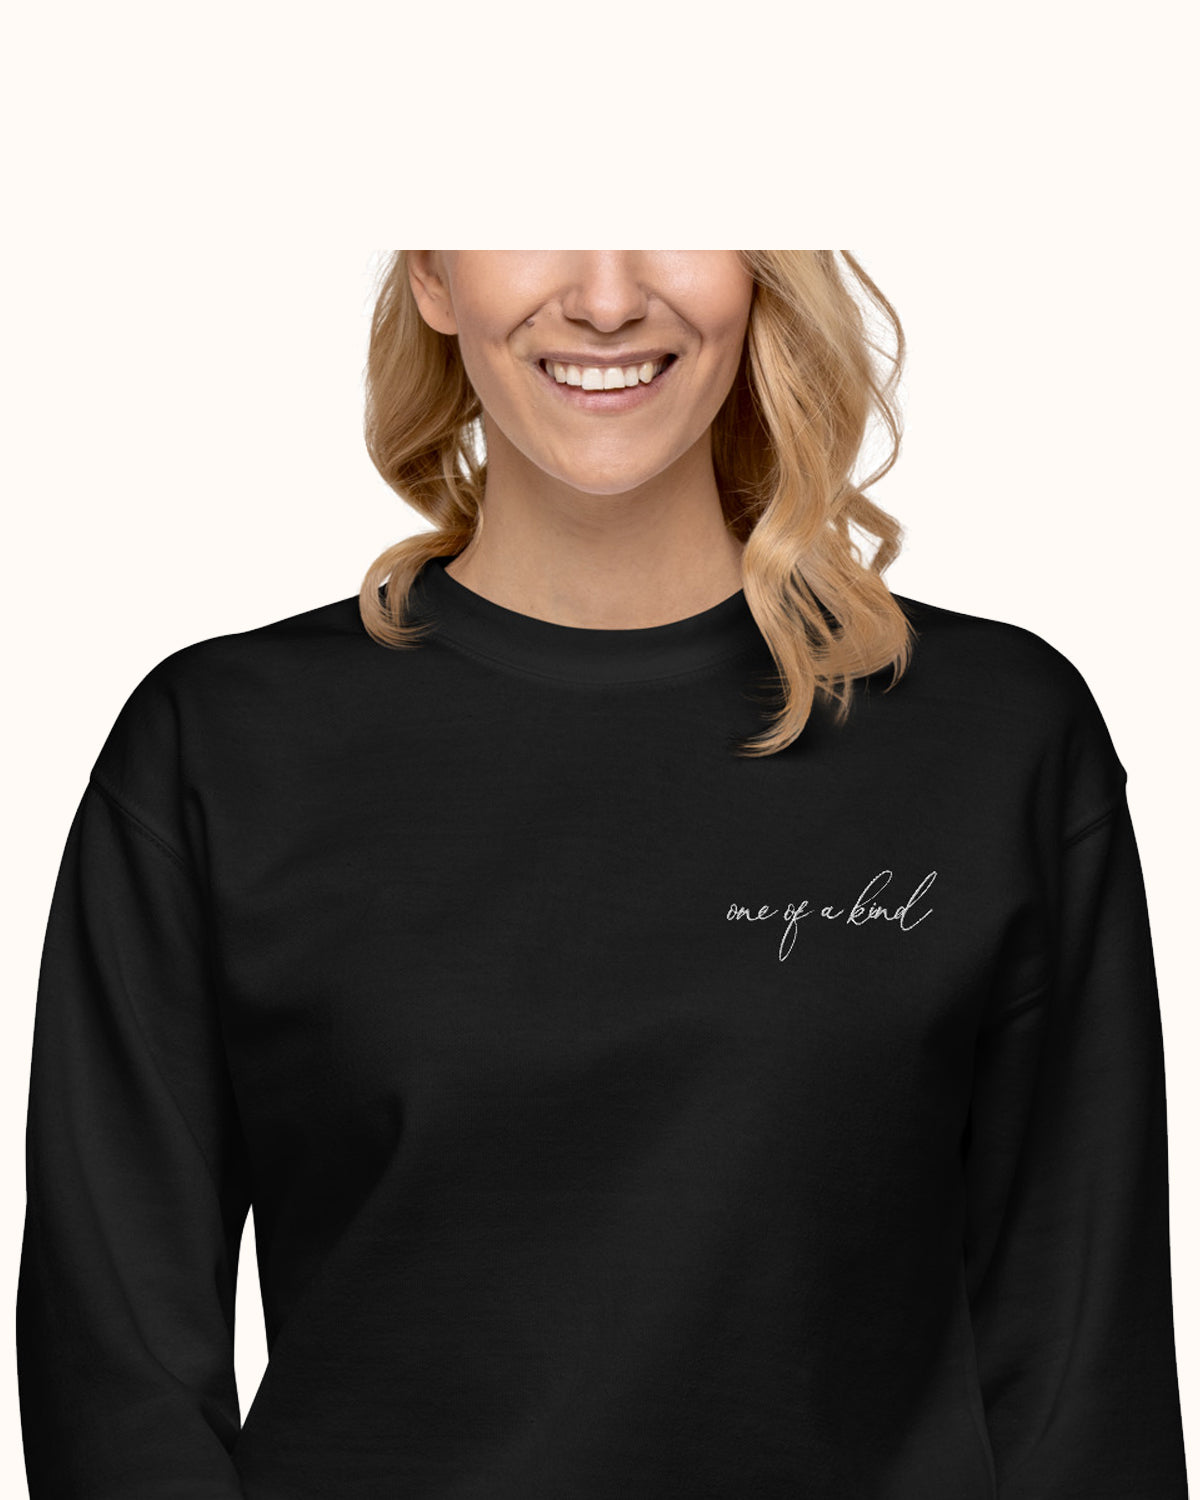 Black, One of a Kind design pullover sweatshirt with fleece lining.